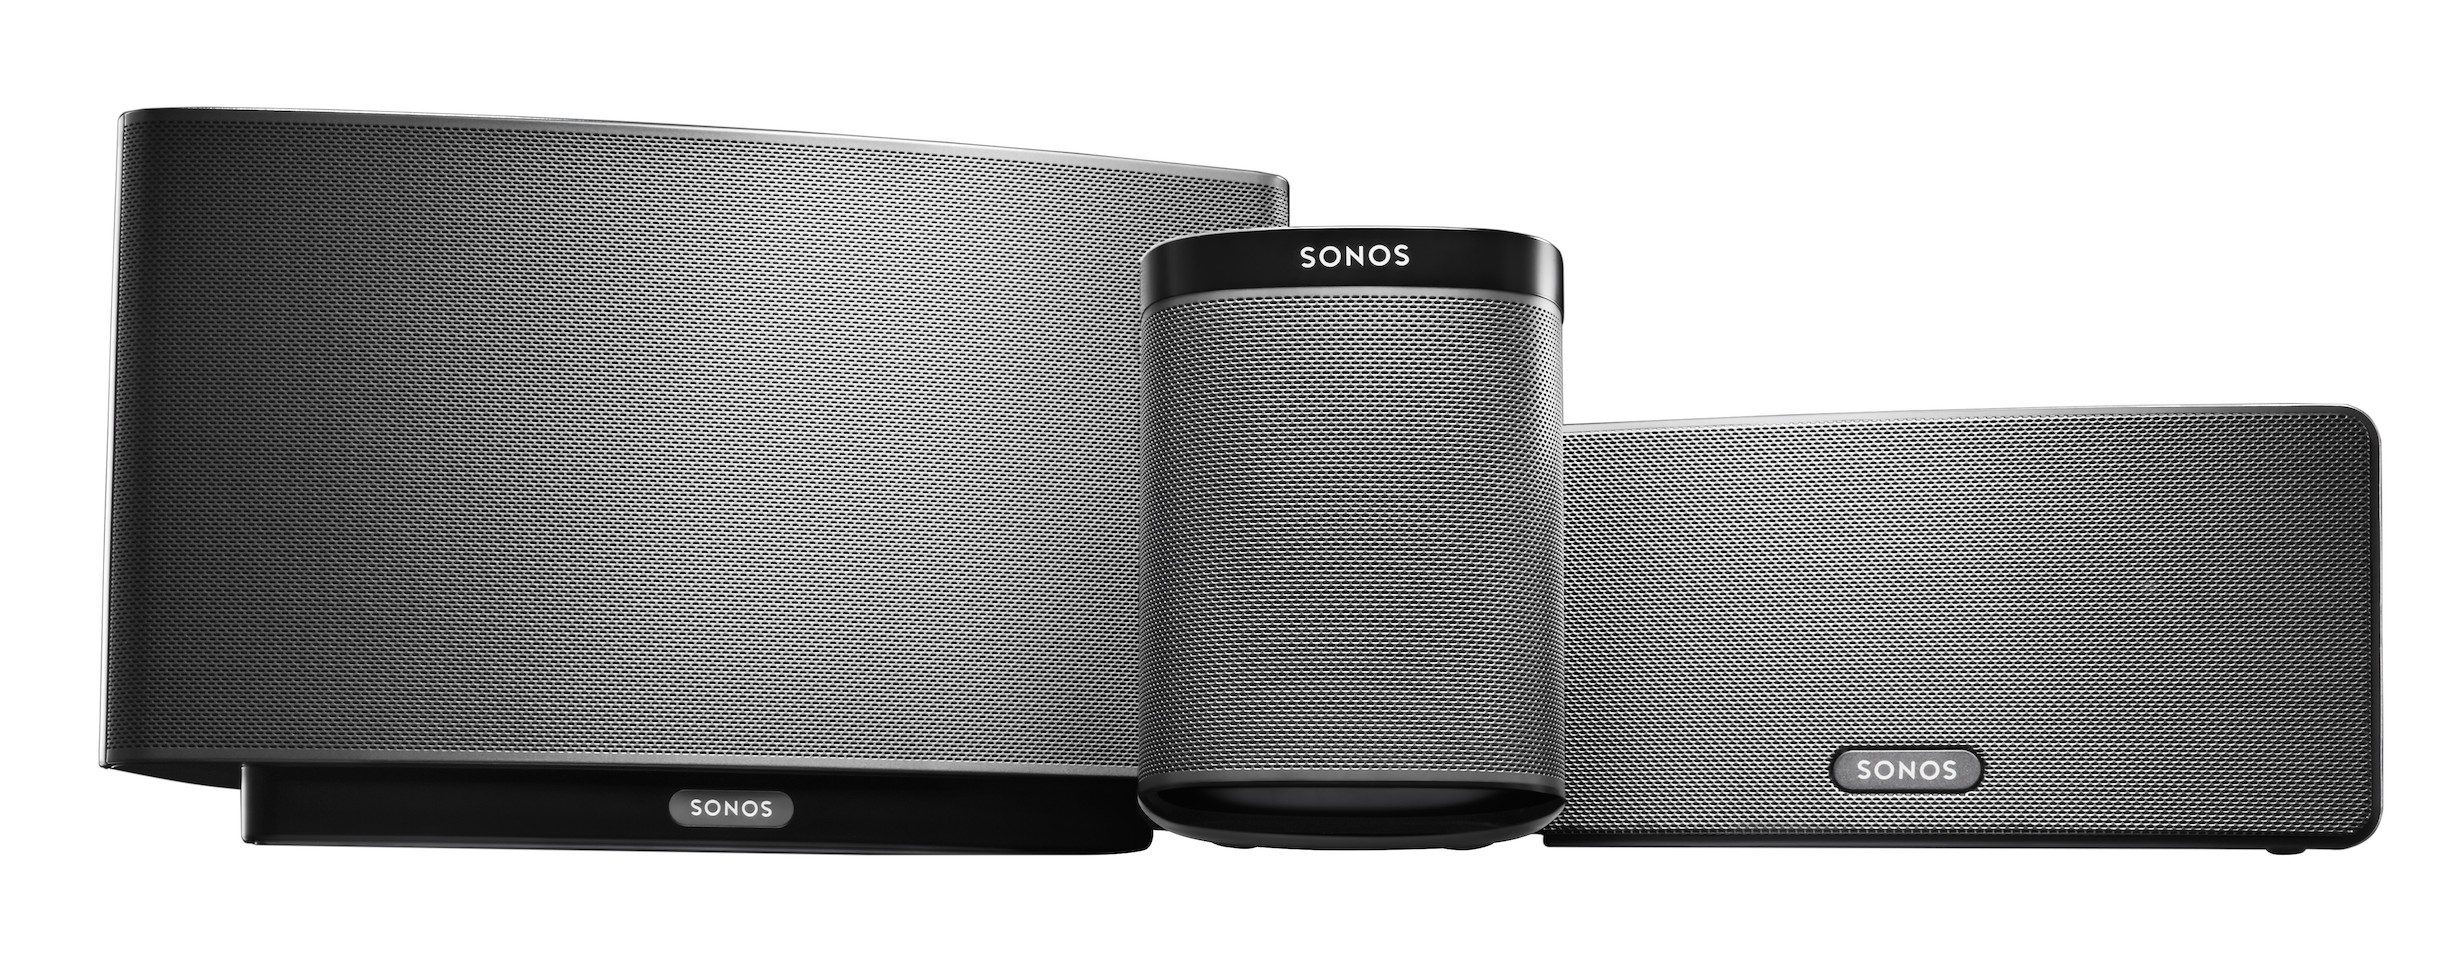 Sonos Part 1: Overview and Play 1, 3, & 5